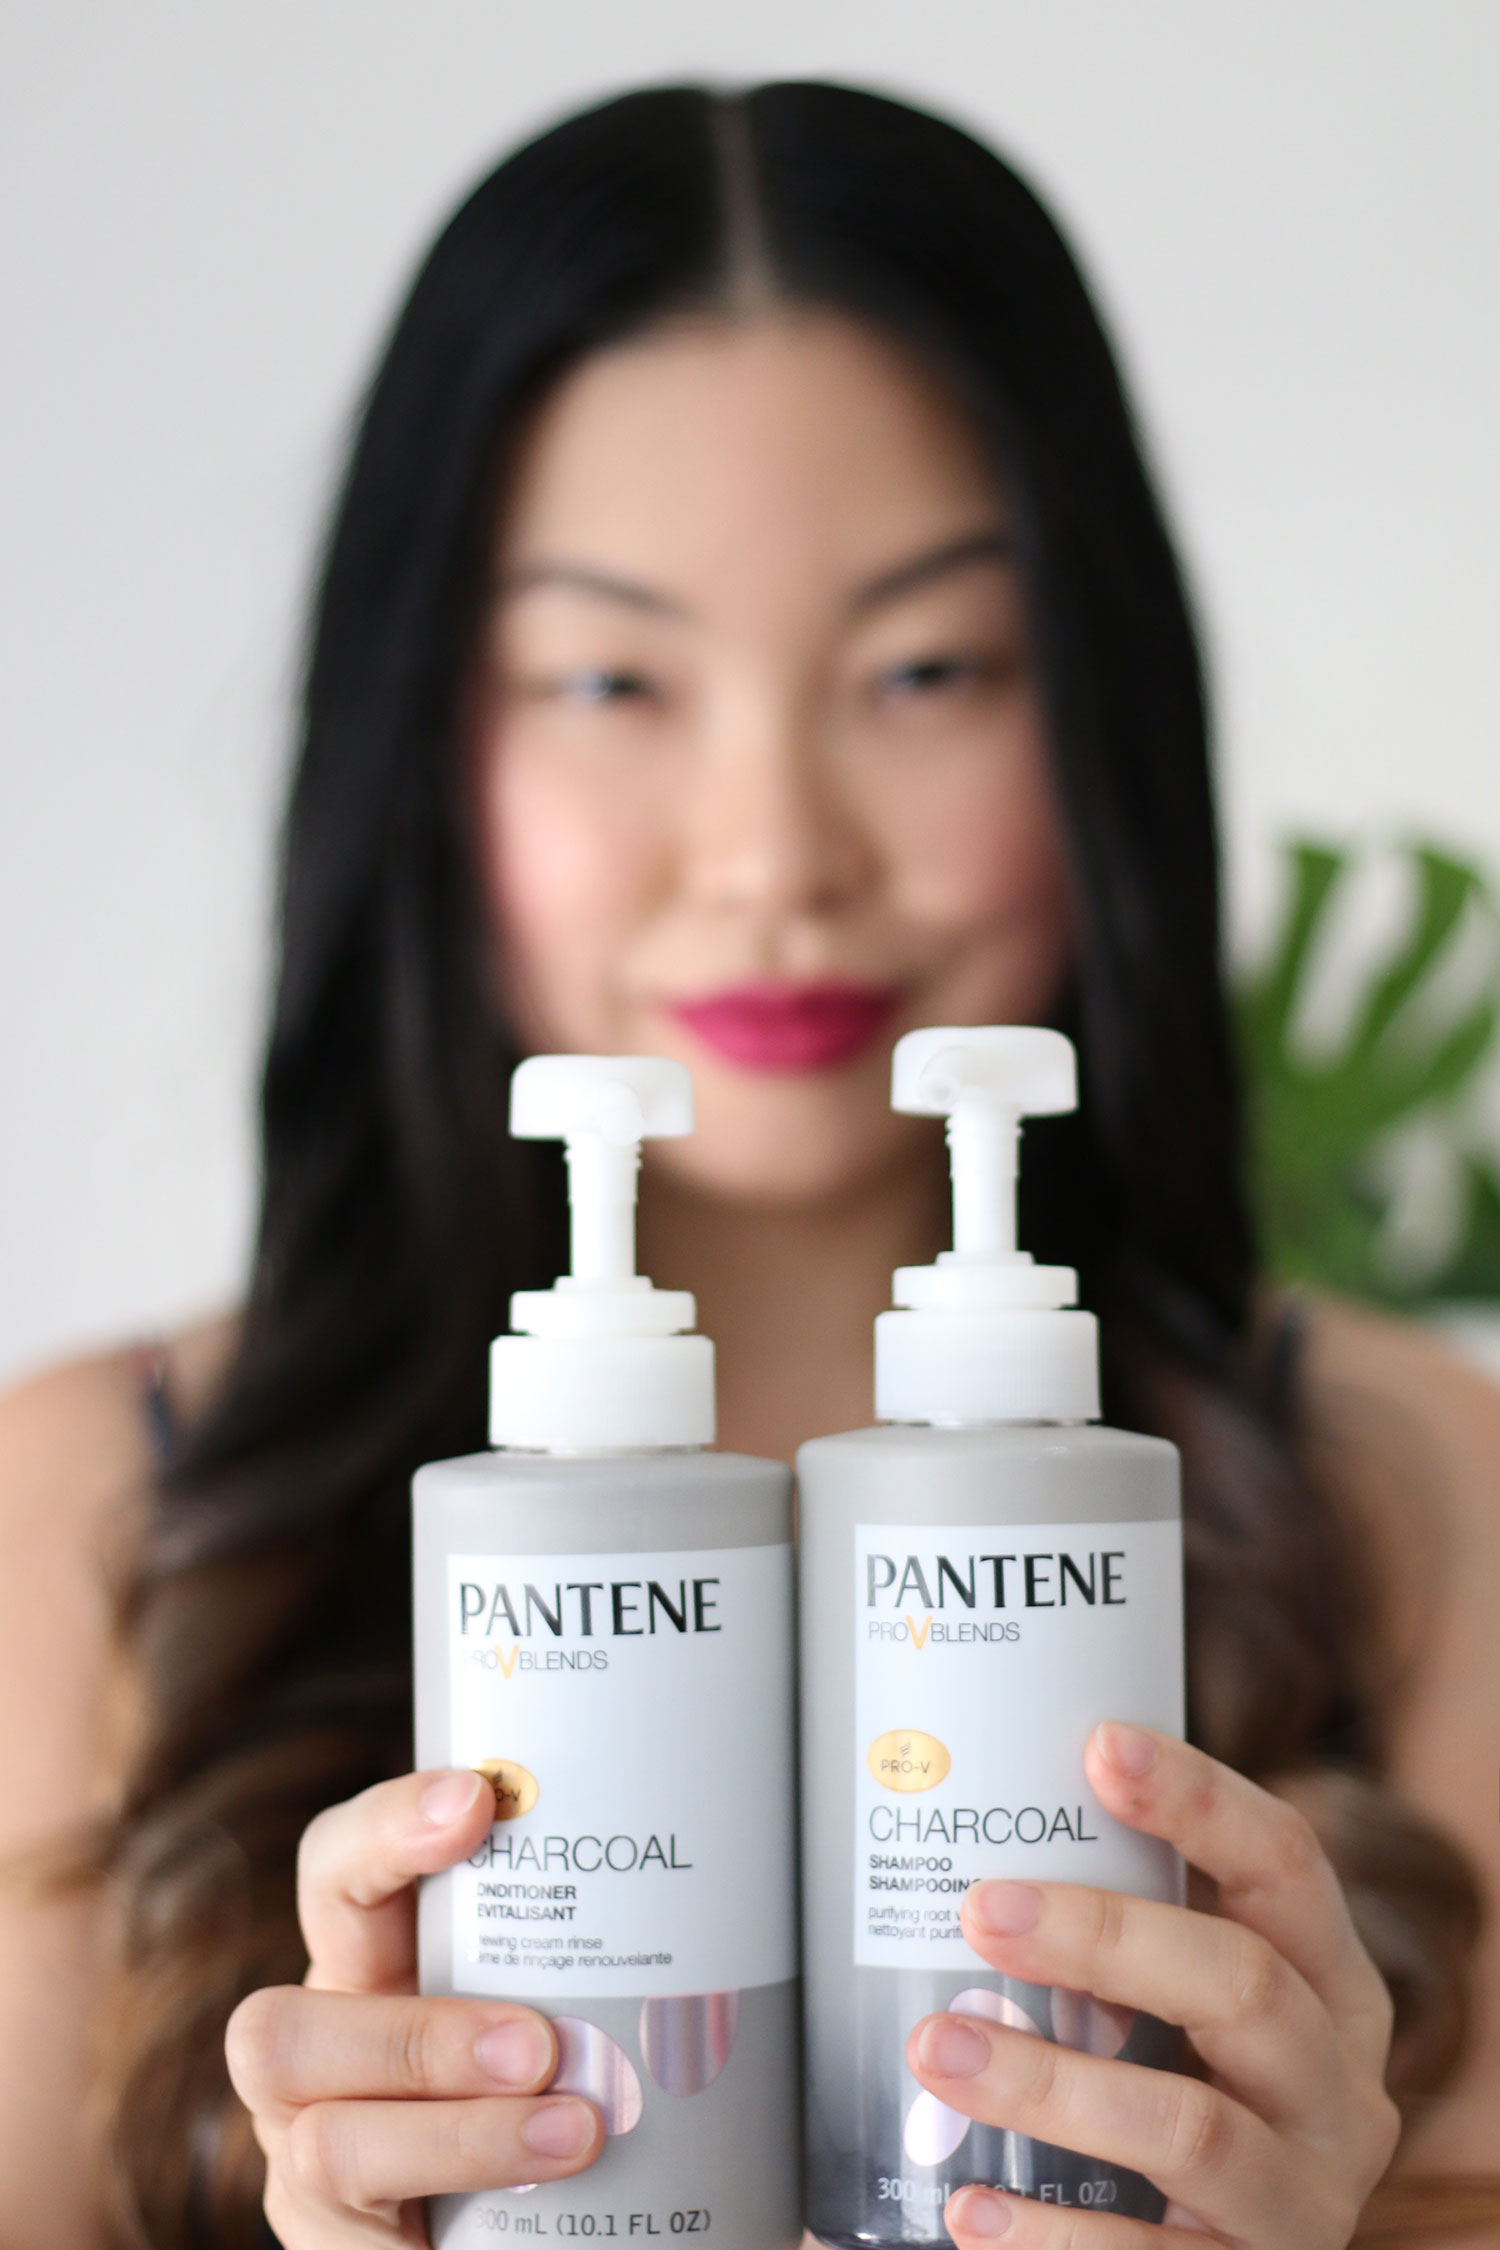 Pantene Pro-V Blends Charcoal Collection